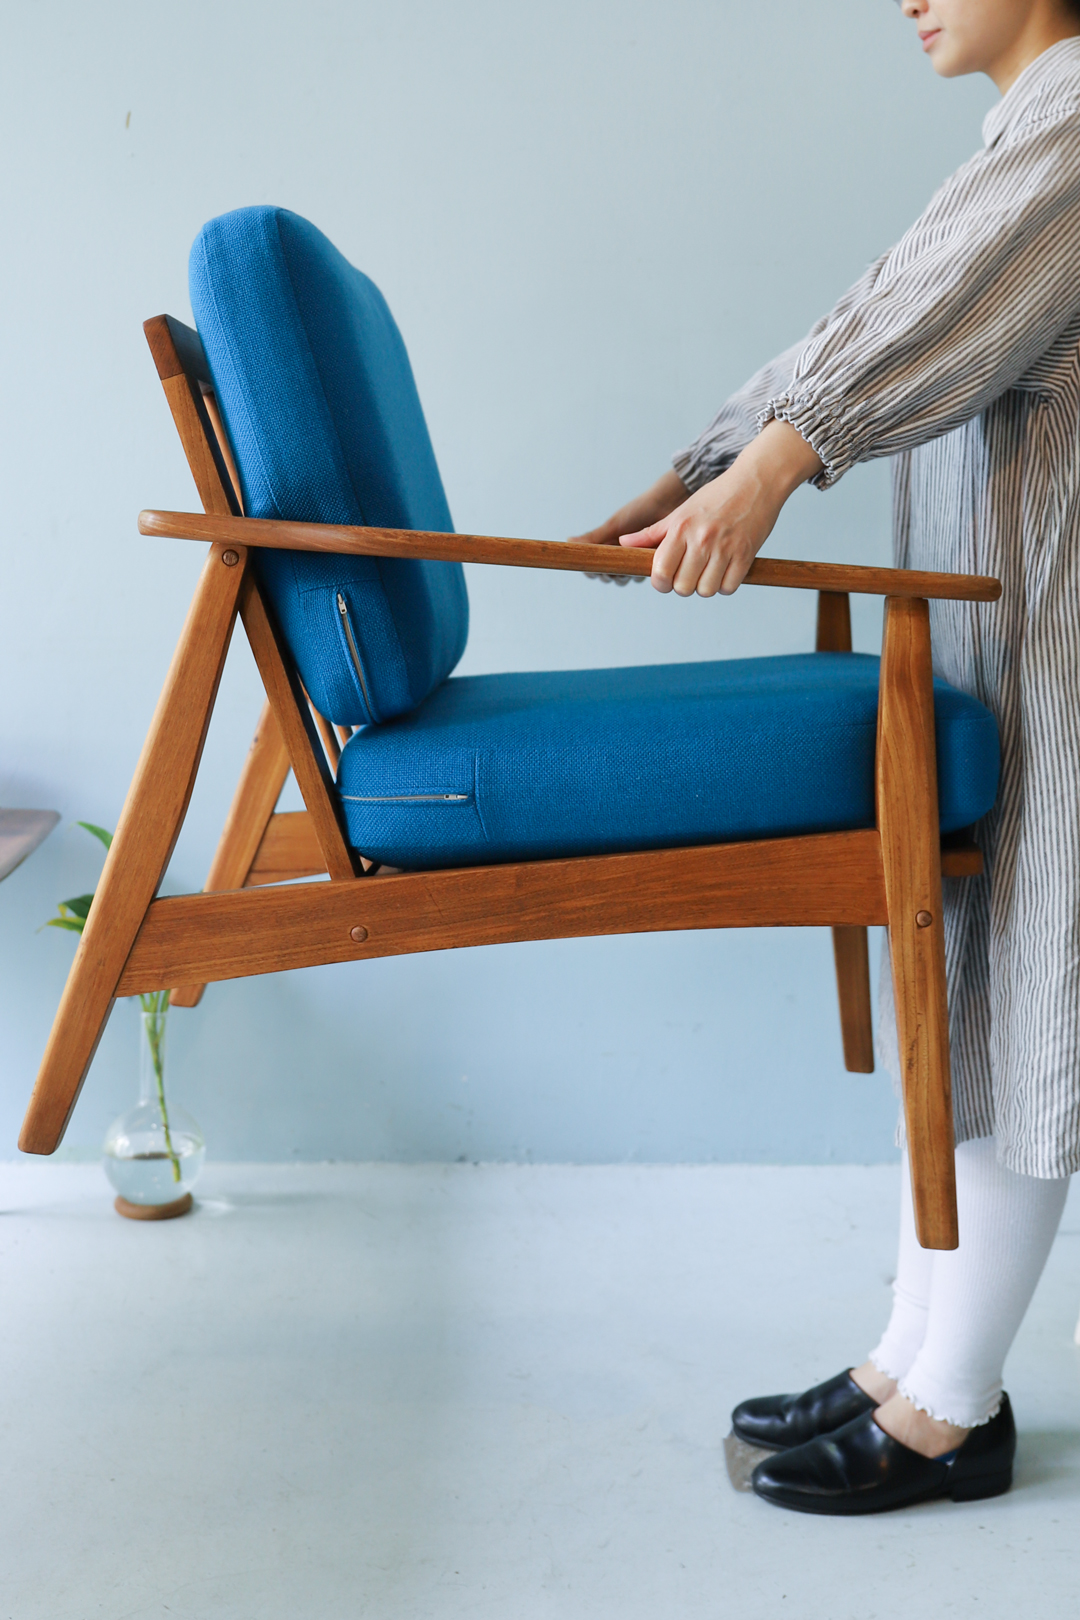 Vintage Easy Chair 1P Sofa Beech Wood/ヴィンテージ イージーチェア ソファ ビーチ材 椅子 ミッドセンチュリーモダン